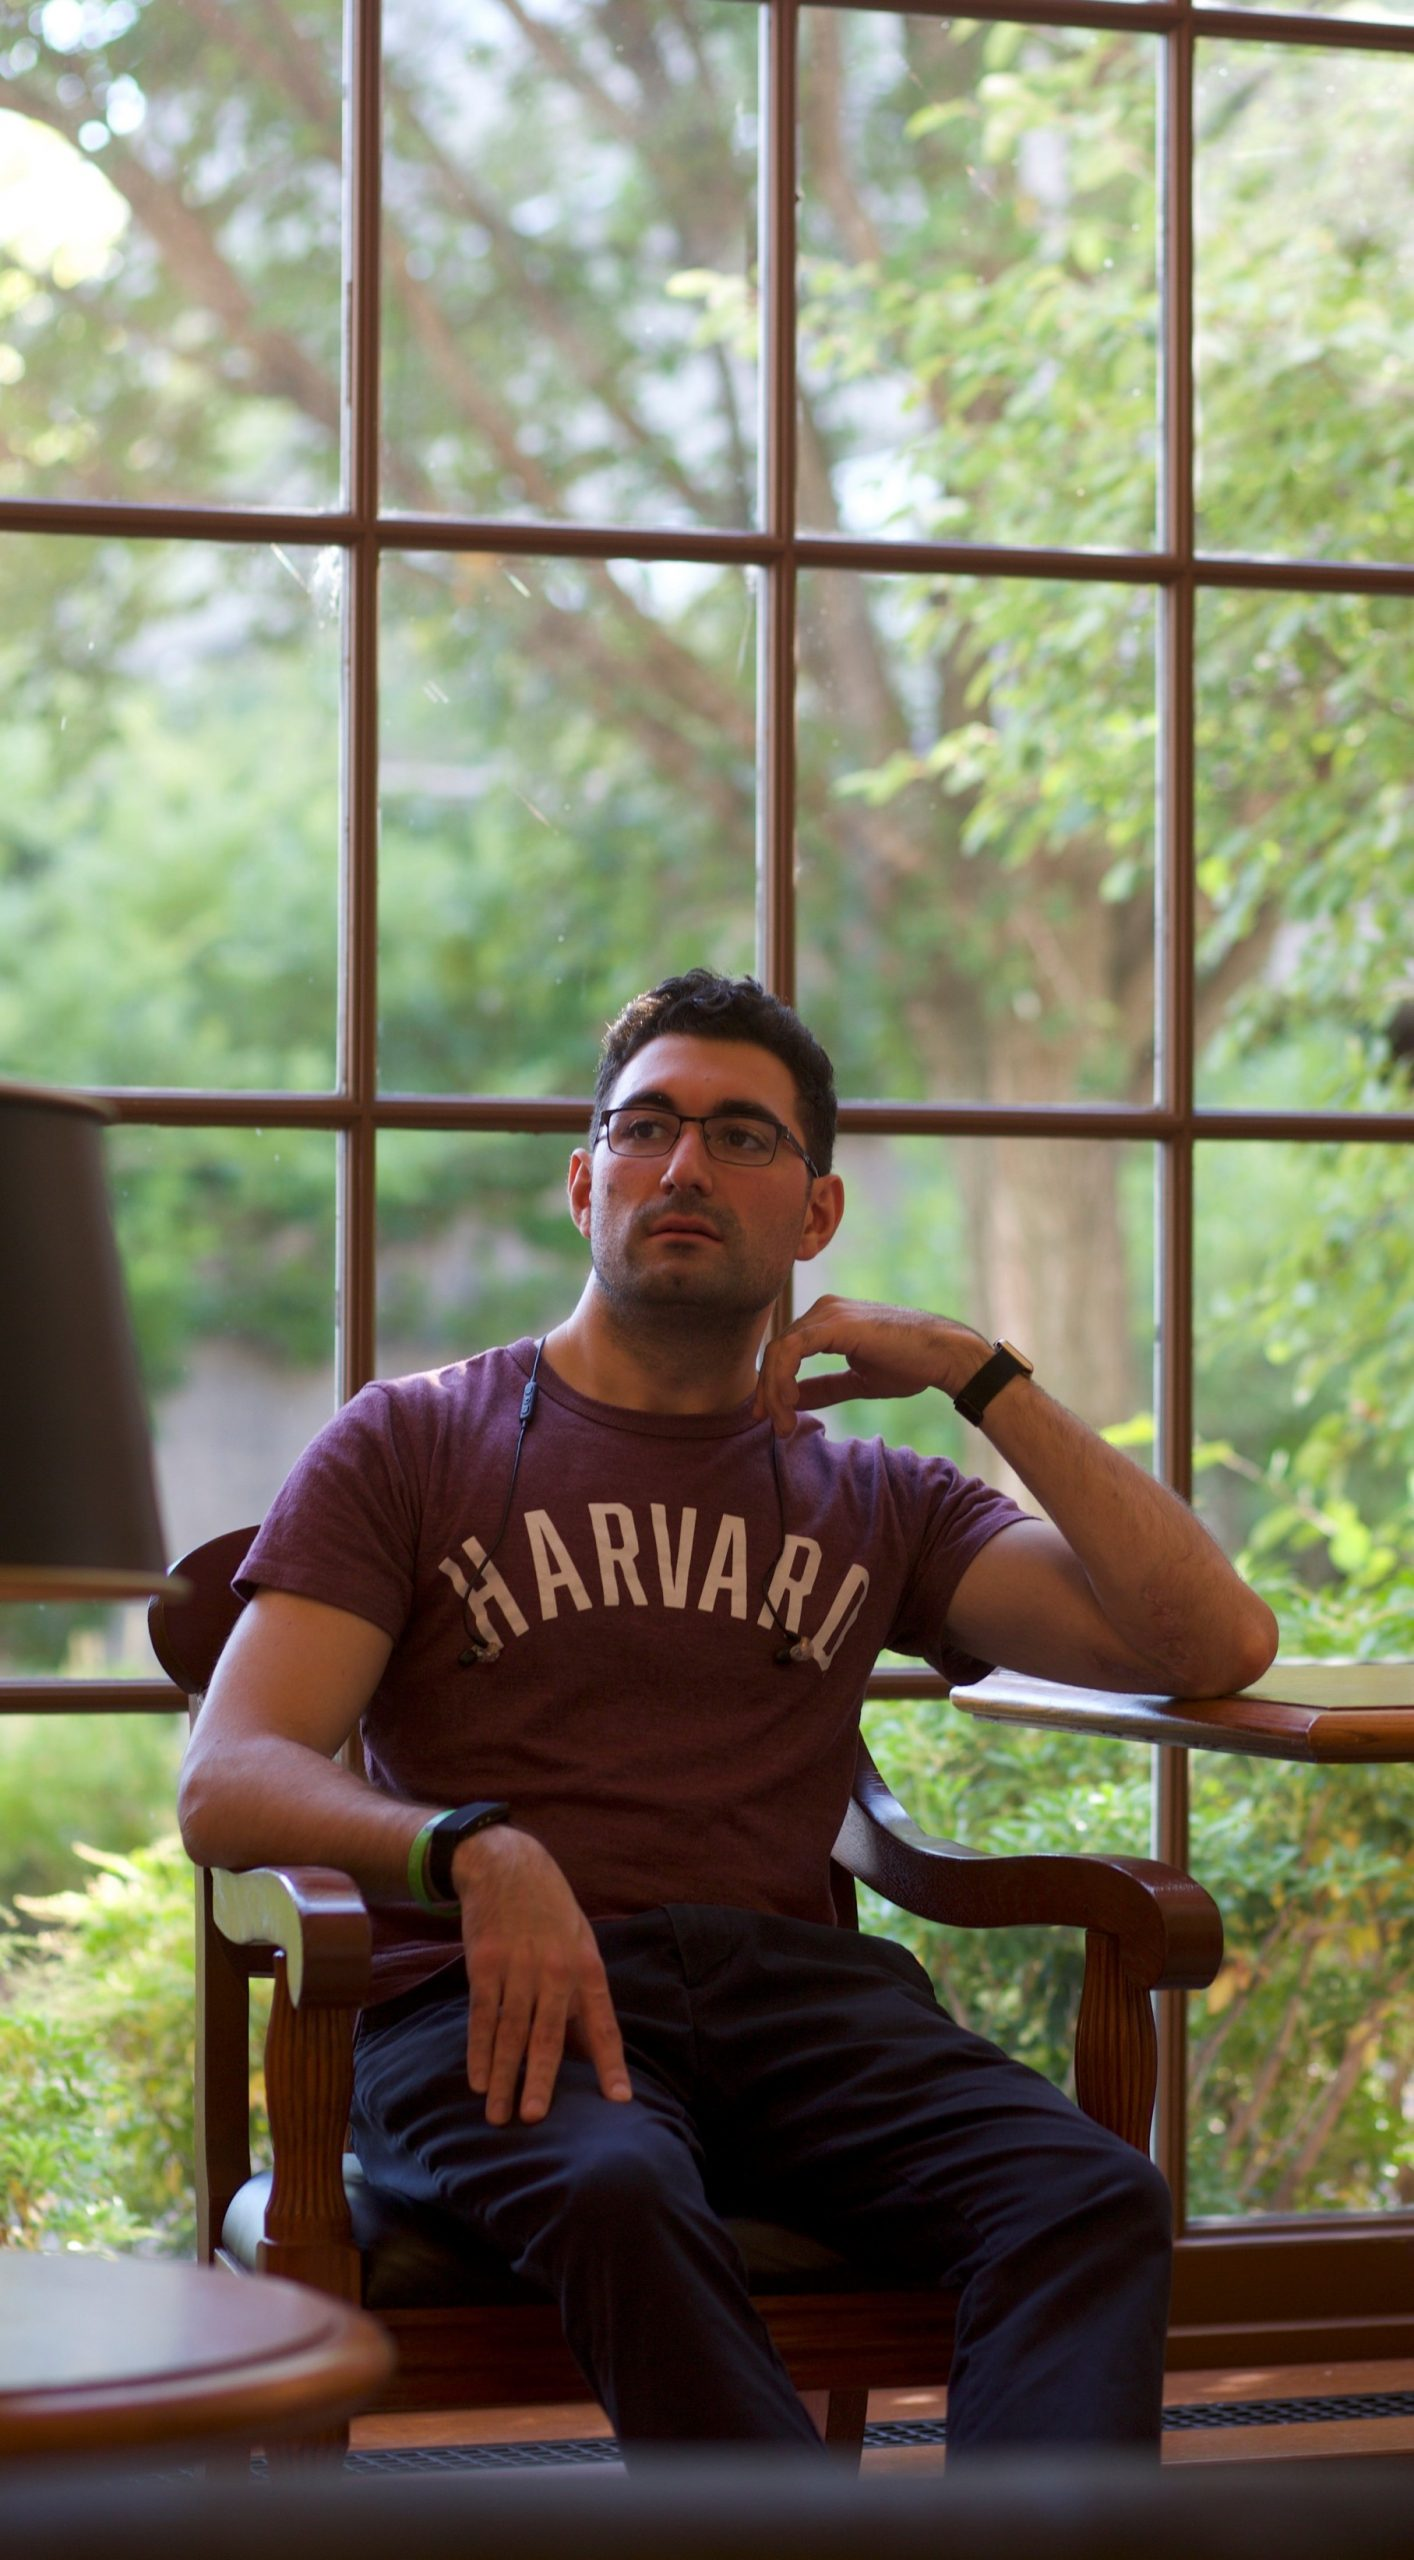 HARVARD BUSINESS SCHOOL VVM Participant JACOB KHAN REFLECTS ON HIS EXPERIENCE IN THE AGE OF COVID-19